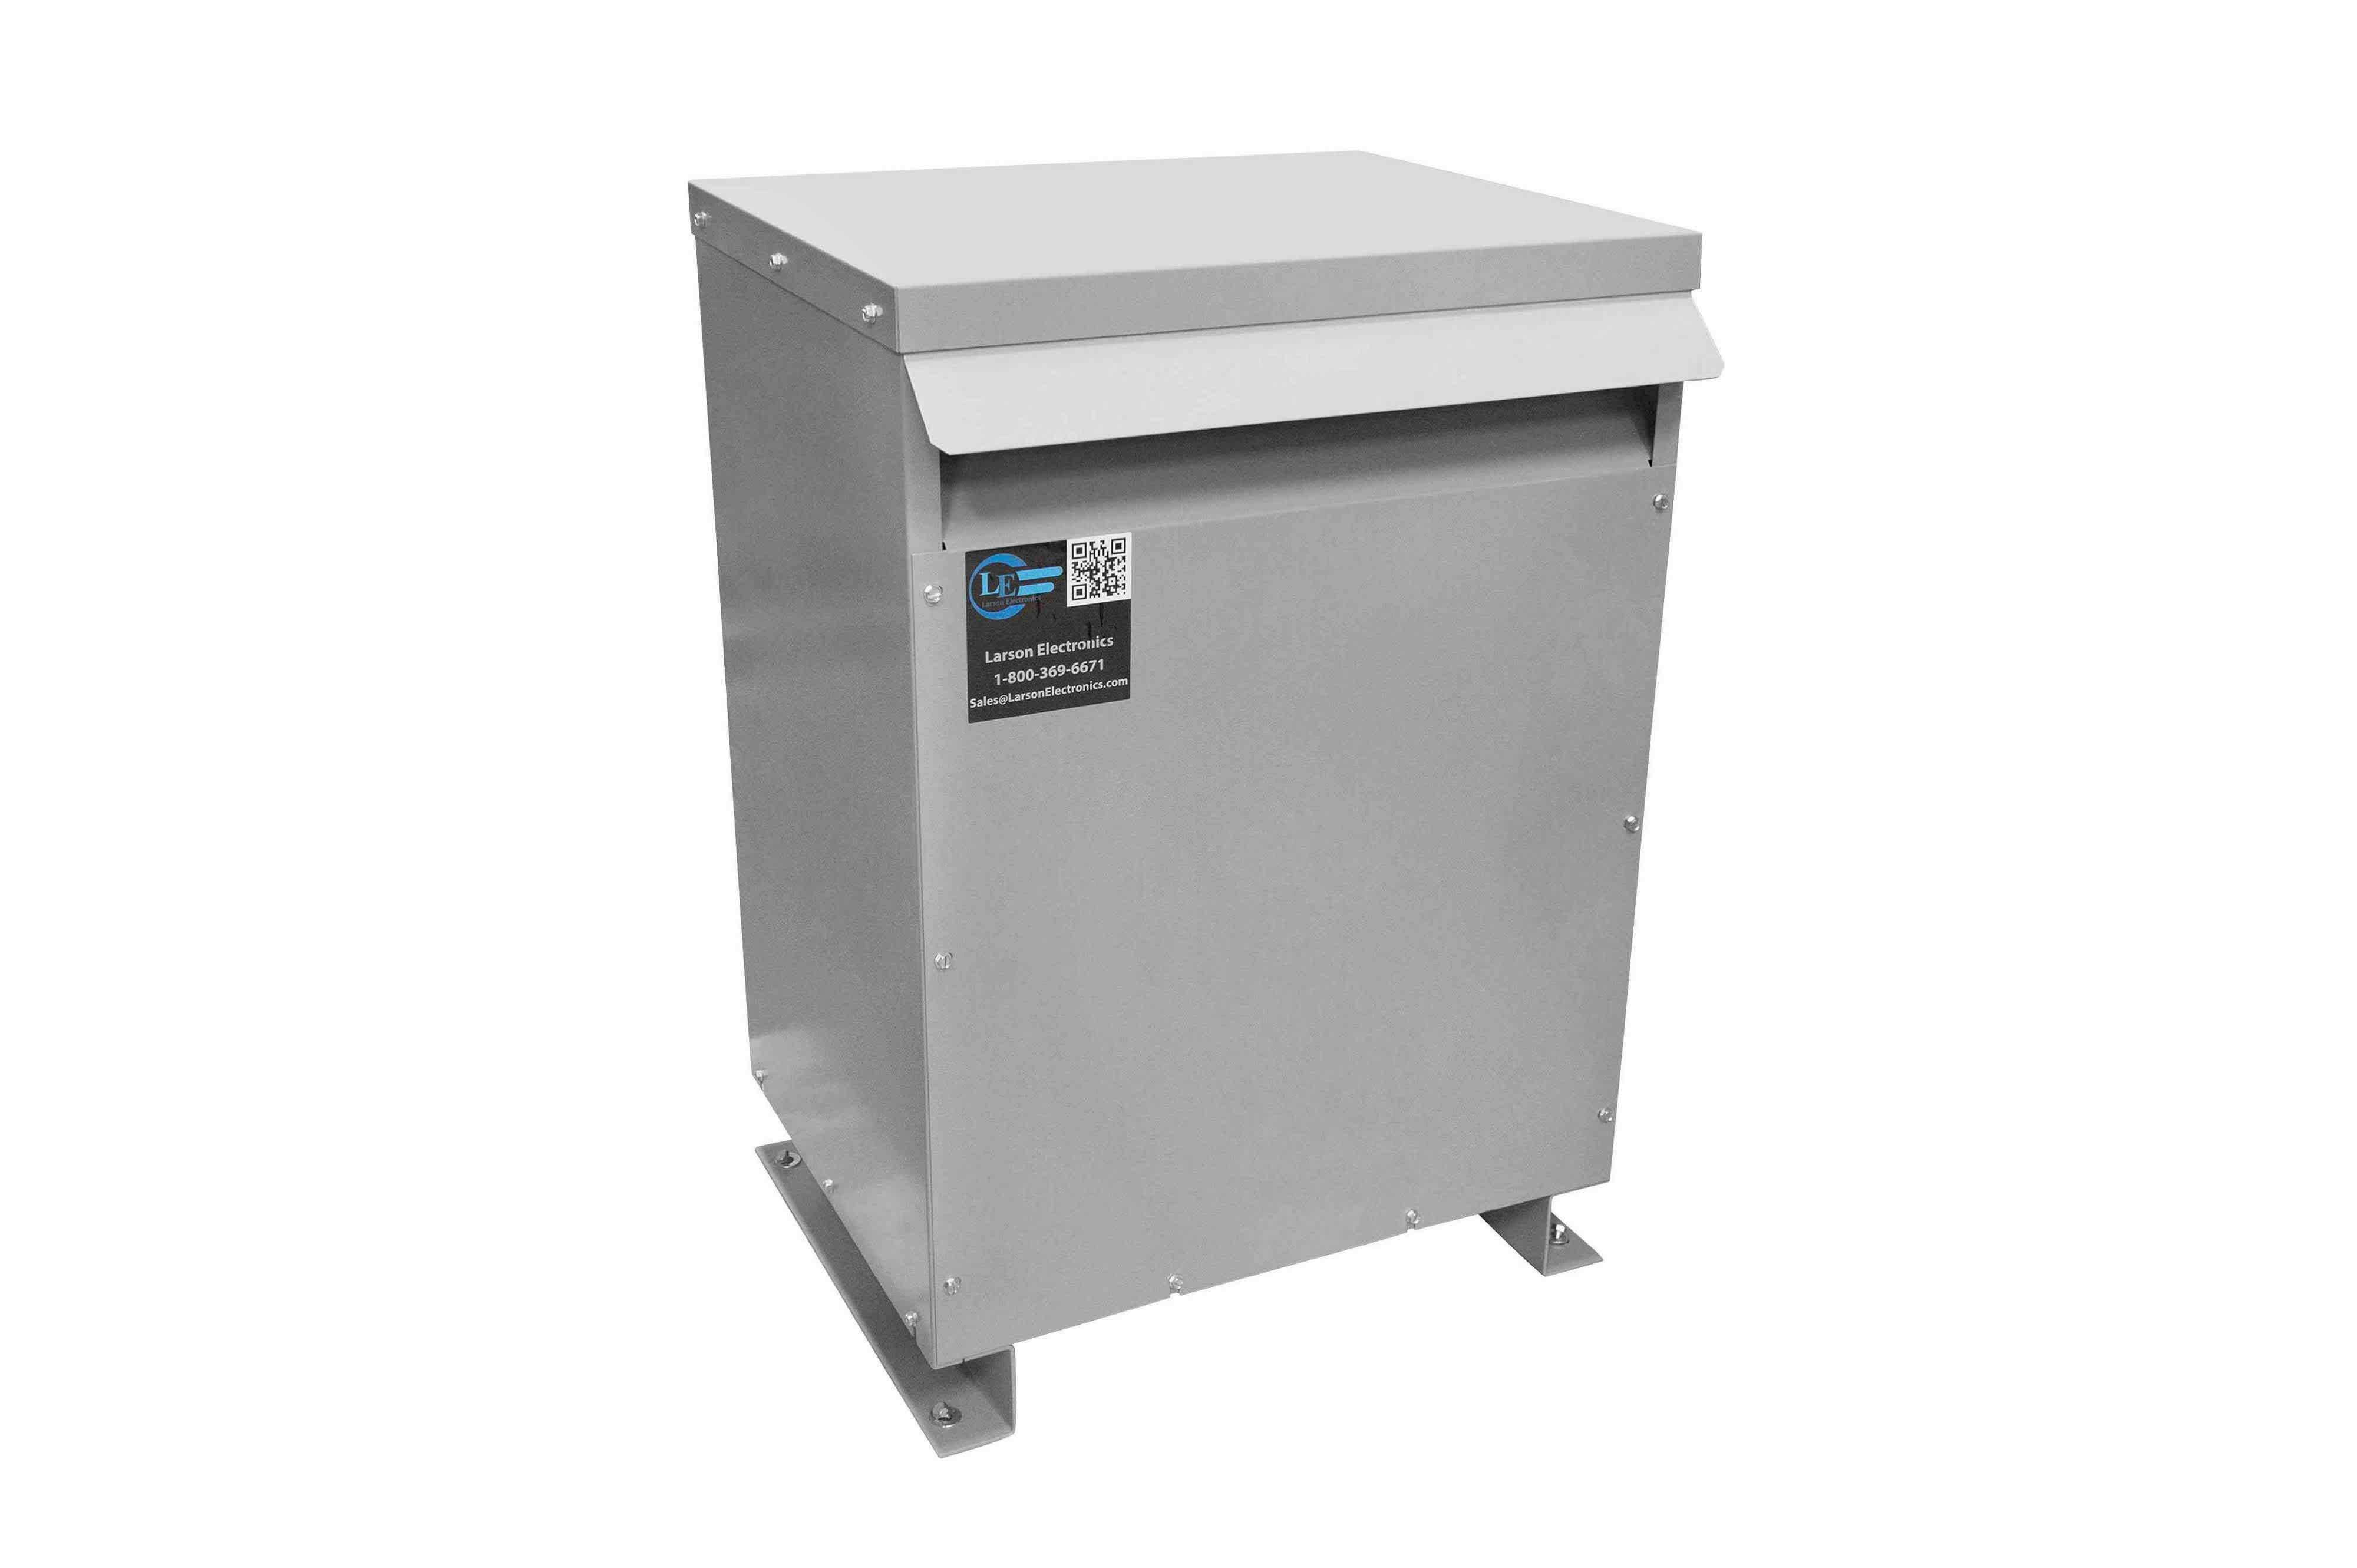 20 kVA 3PH Isolation Transformer, 240V Wye Primary, 380Y/220 Wye-N Secondary, N3R, Ventilated, 60 Hz